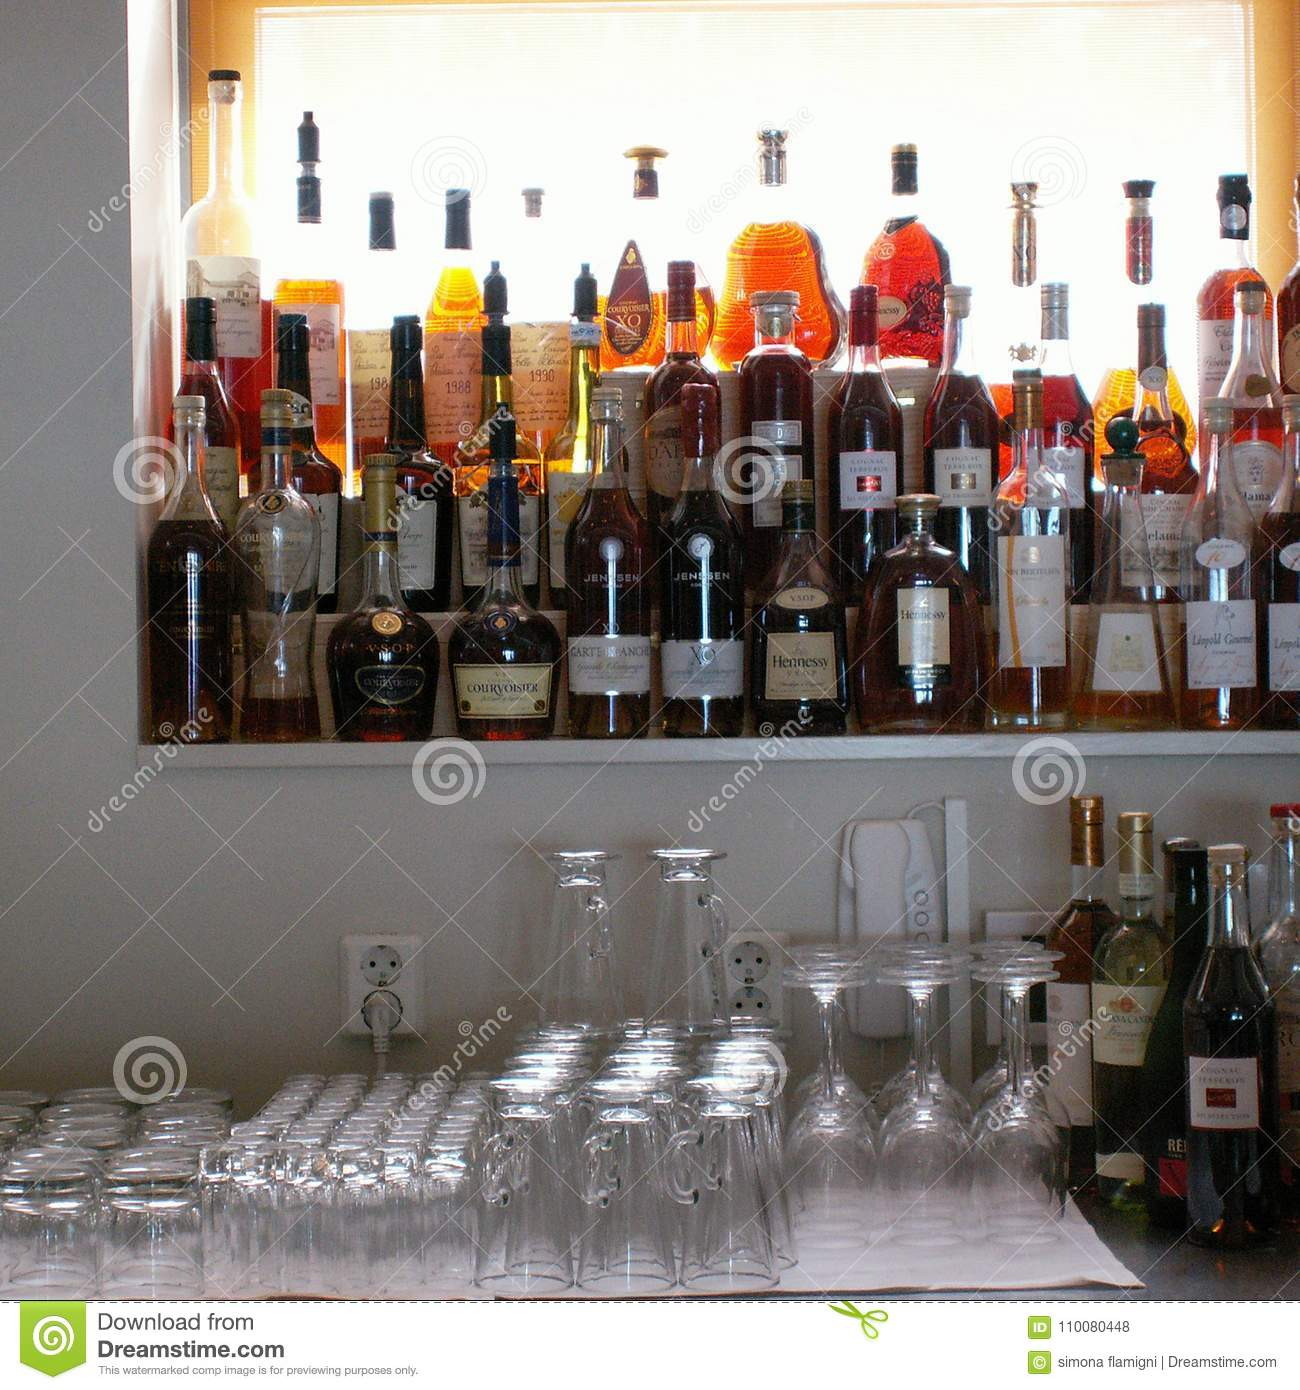 Liquors bottles in a bar editorial stock photo  Image of